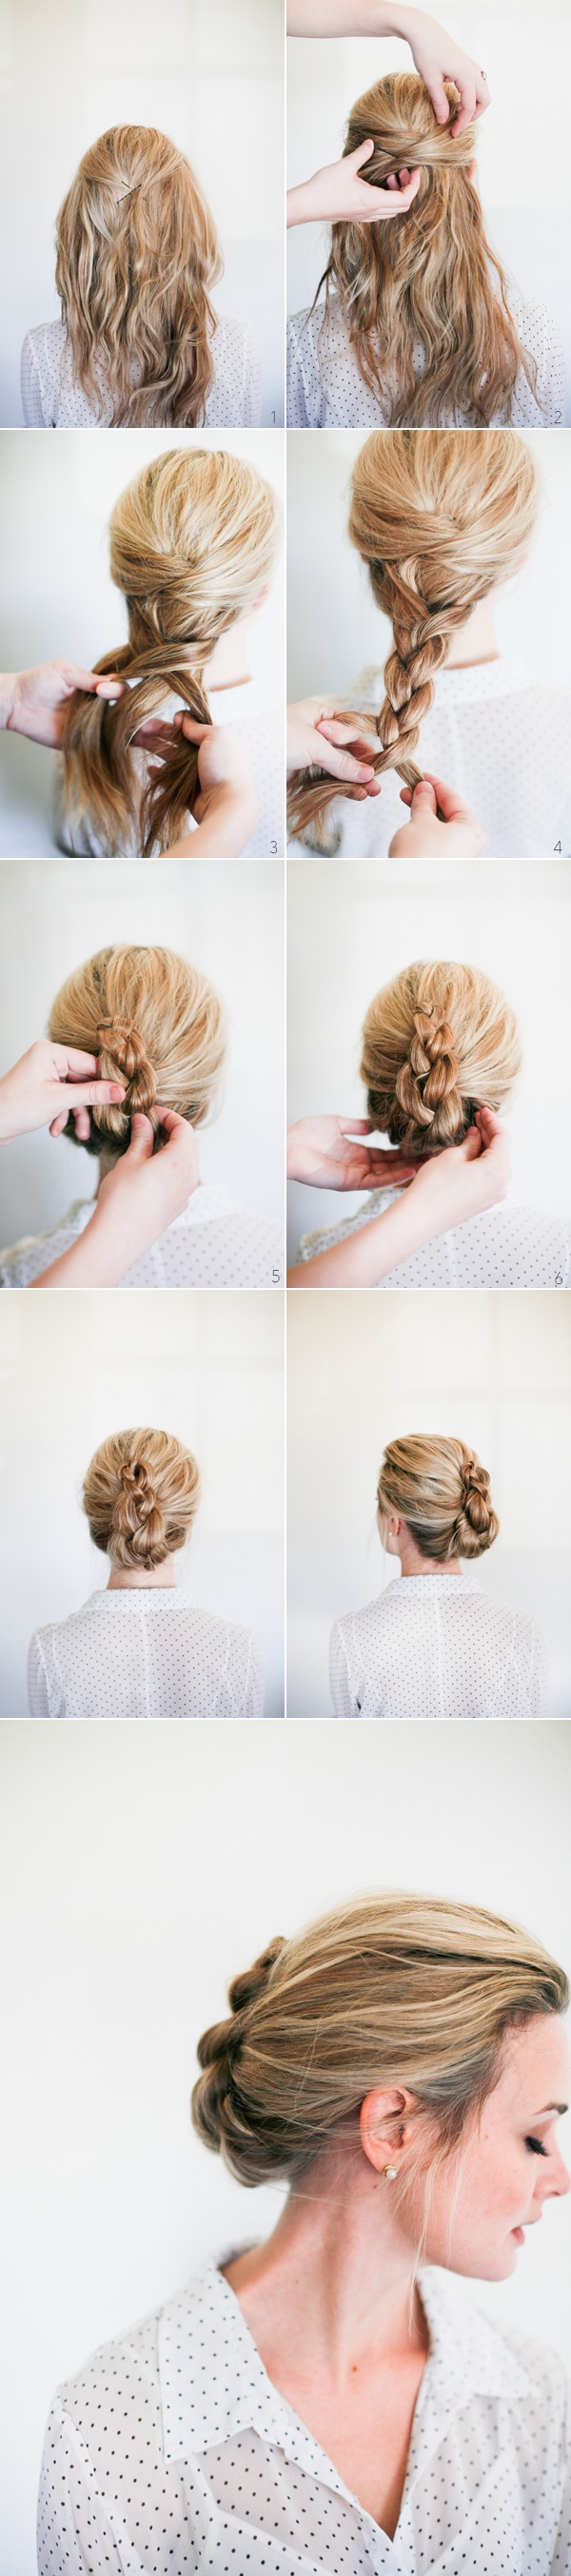 Wedding Hairstyle Tutorial Romantic Braided French Twist